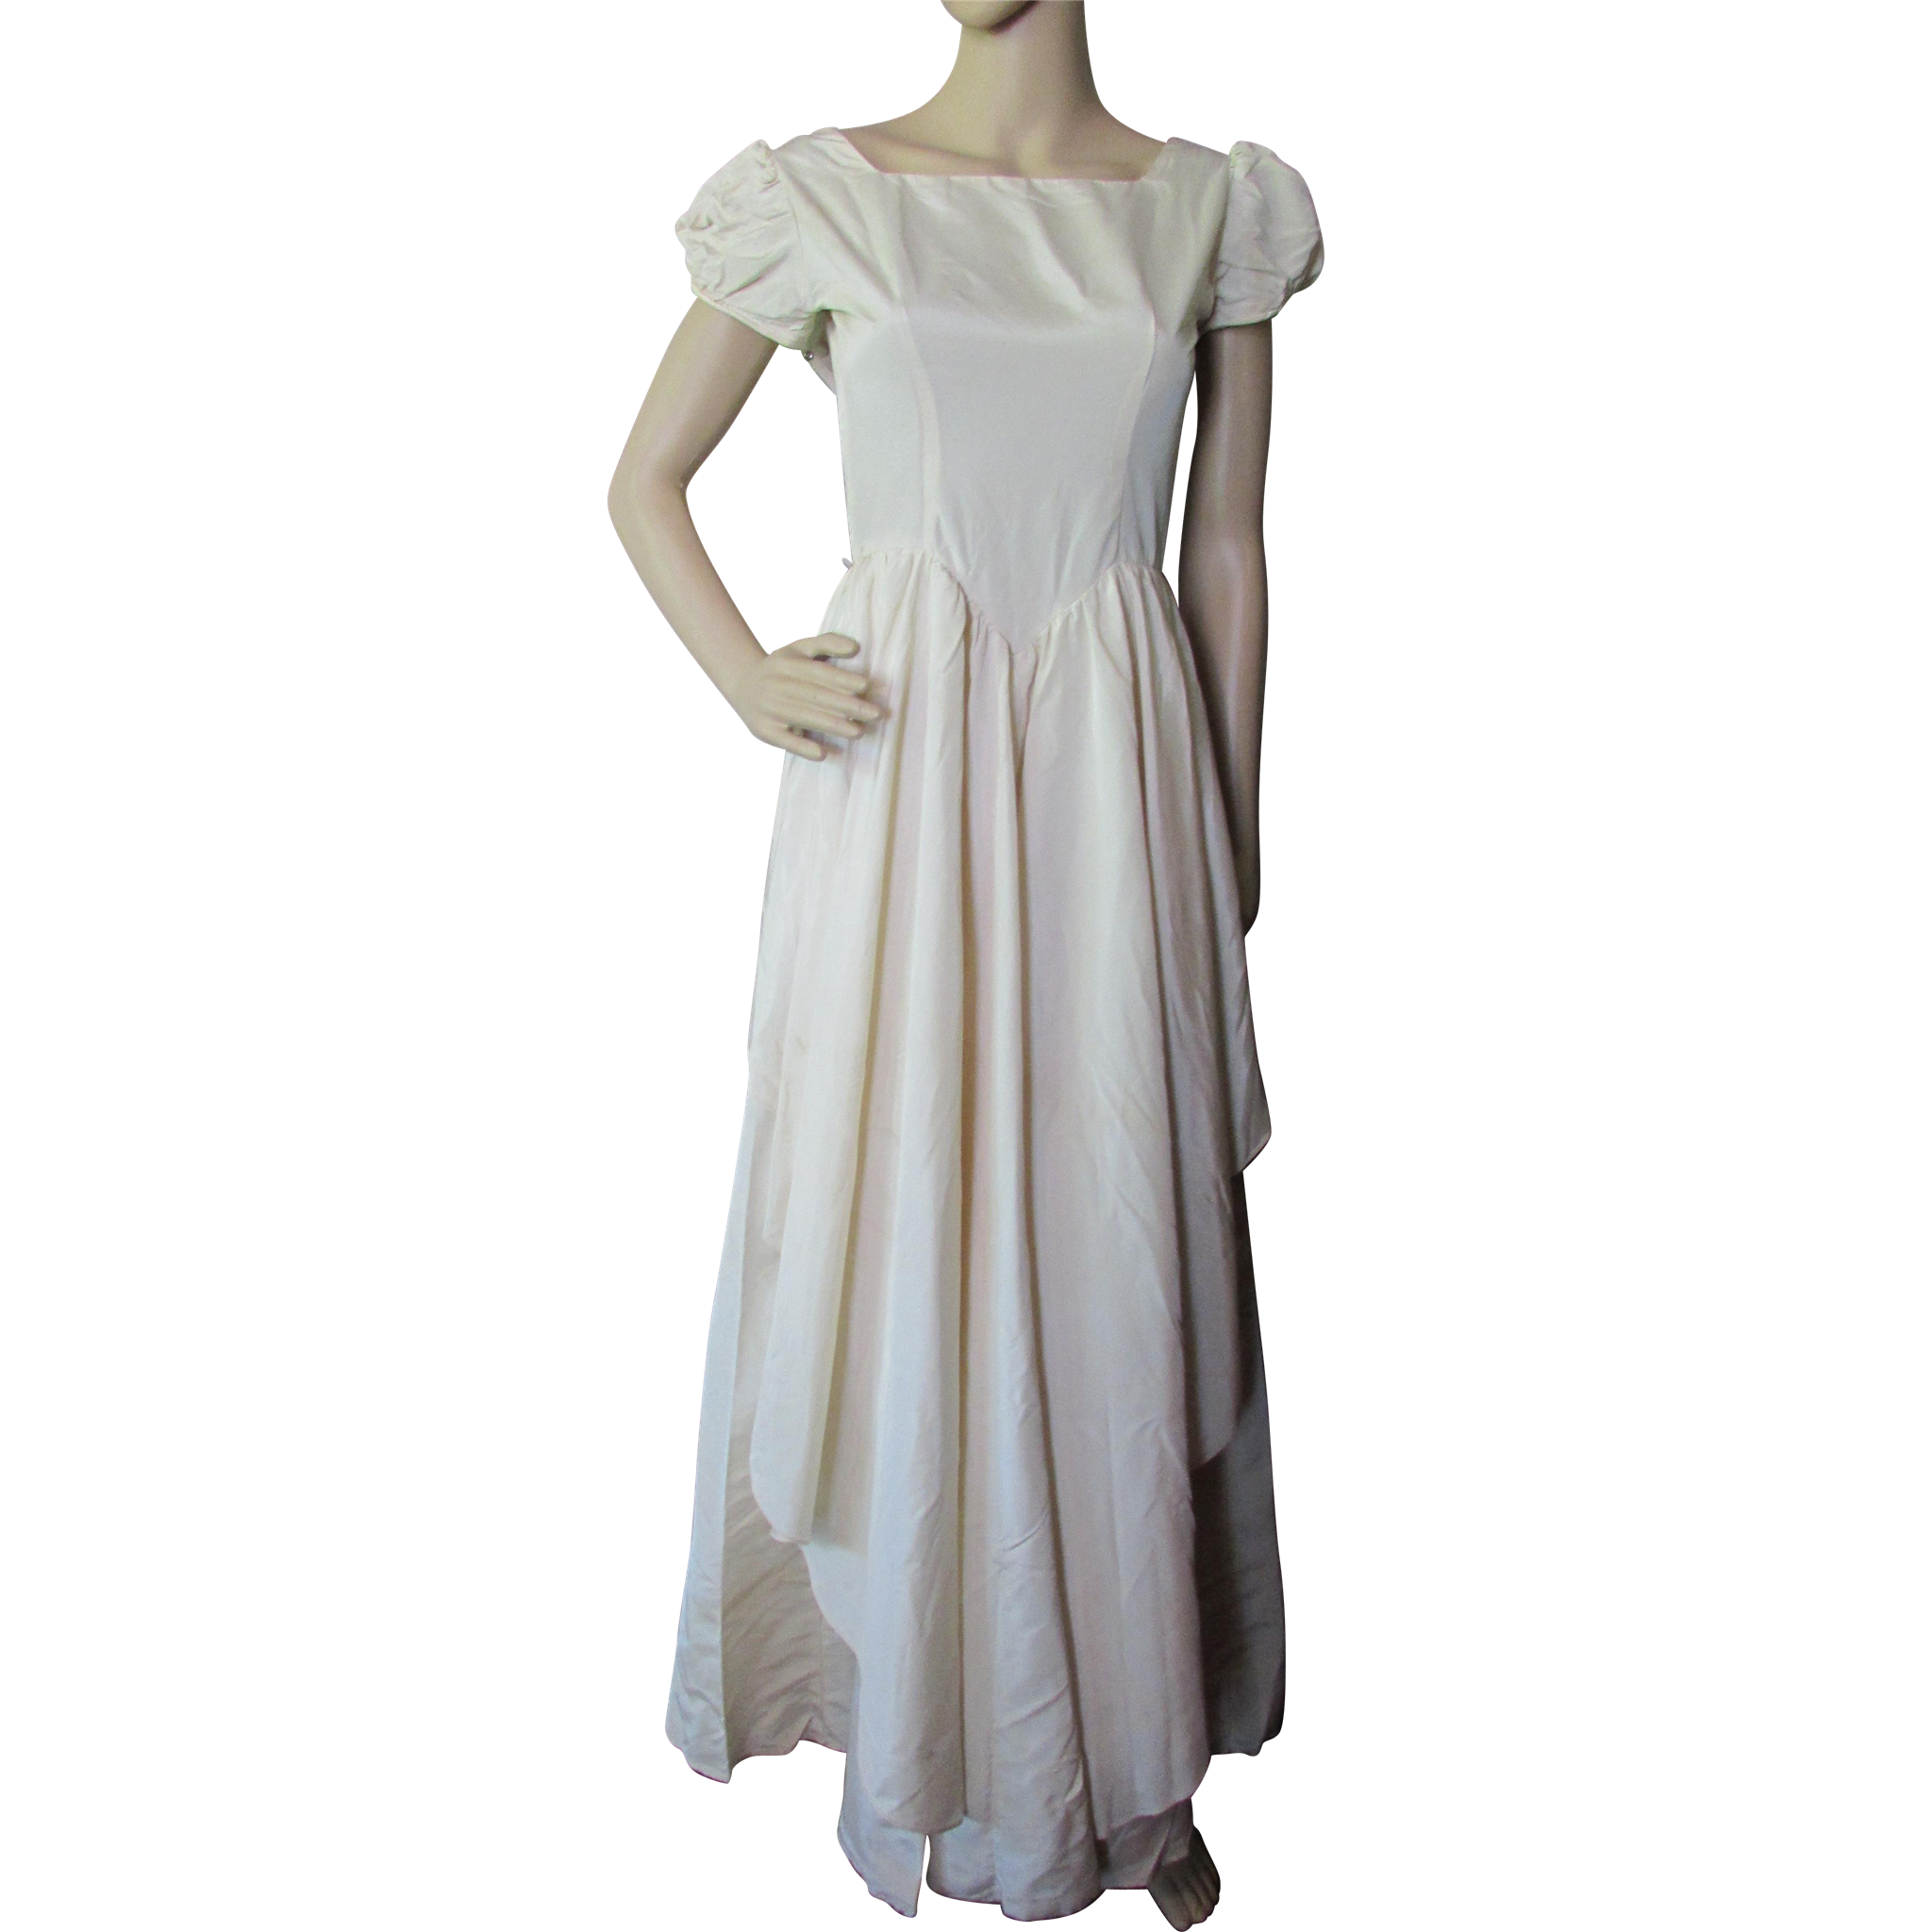 Satin Dance Dress or Wedding Dress in Cream Tone 1940 1950 Style